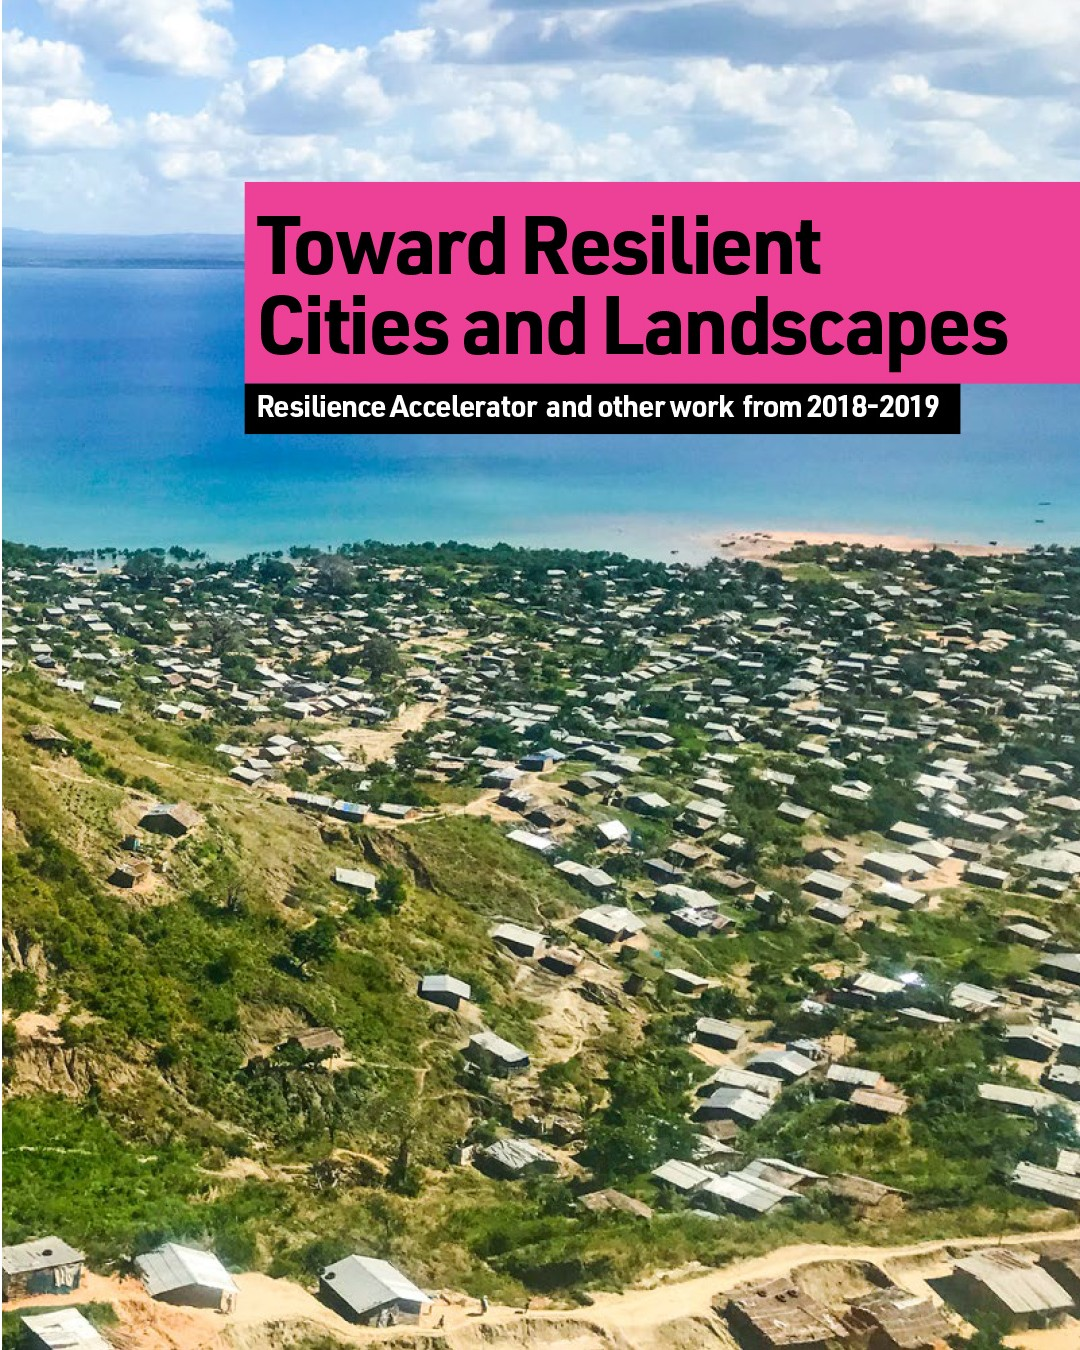 Towards Resilient Cities and Landscapes